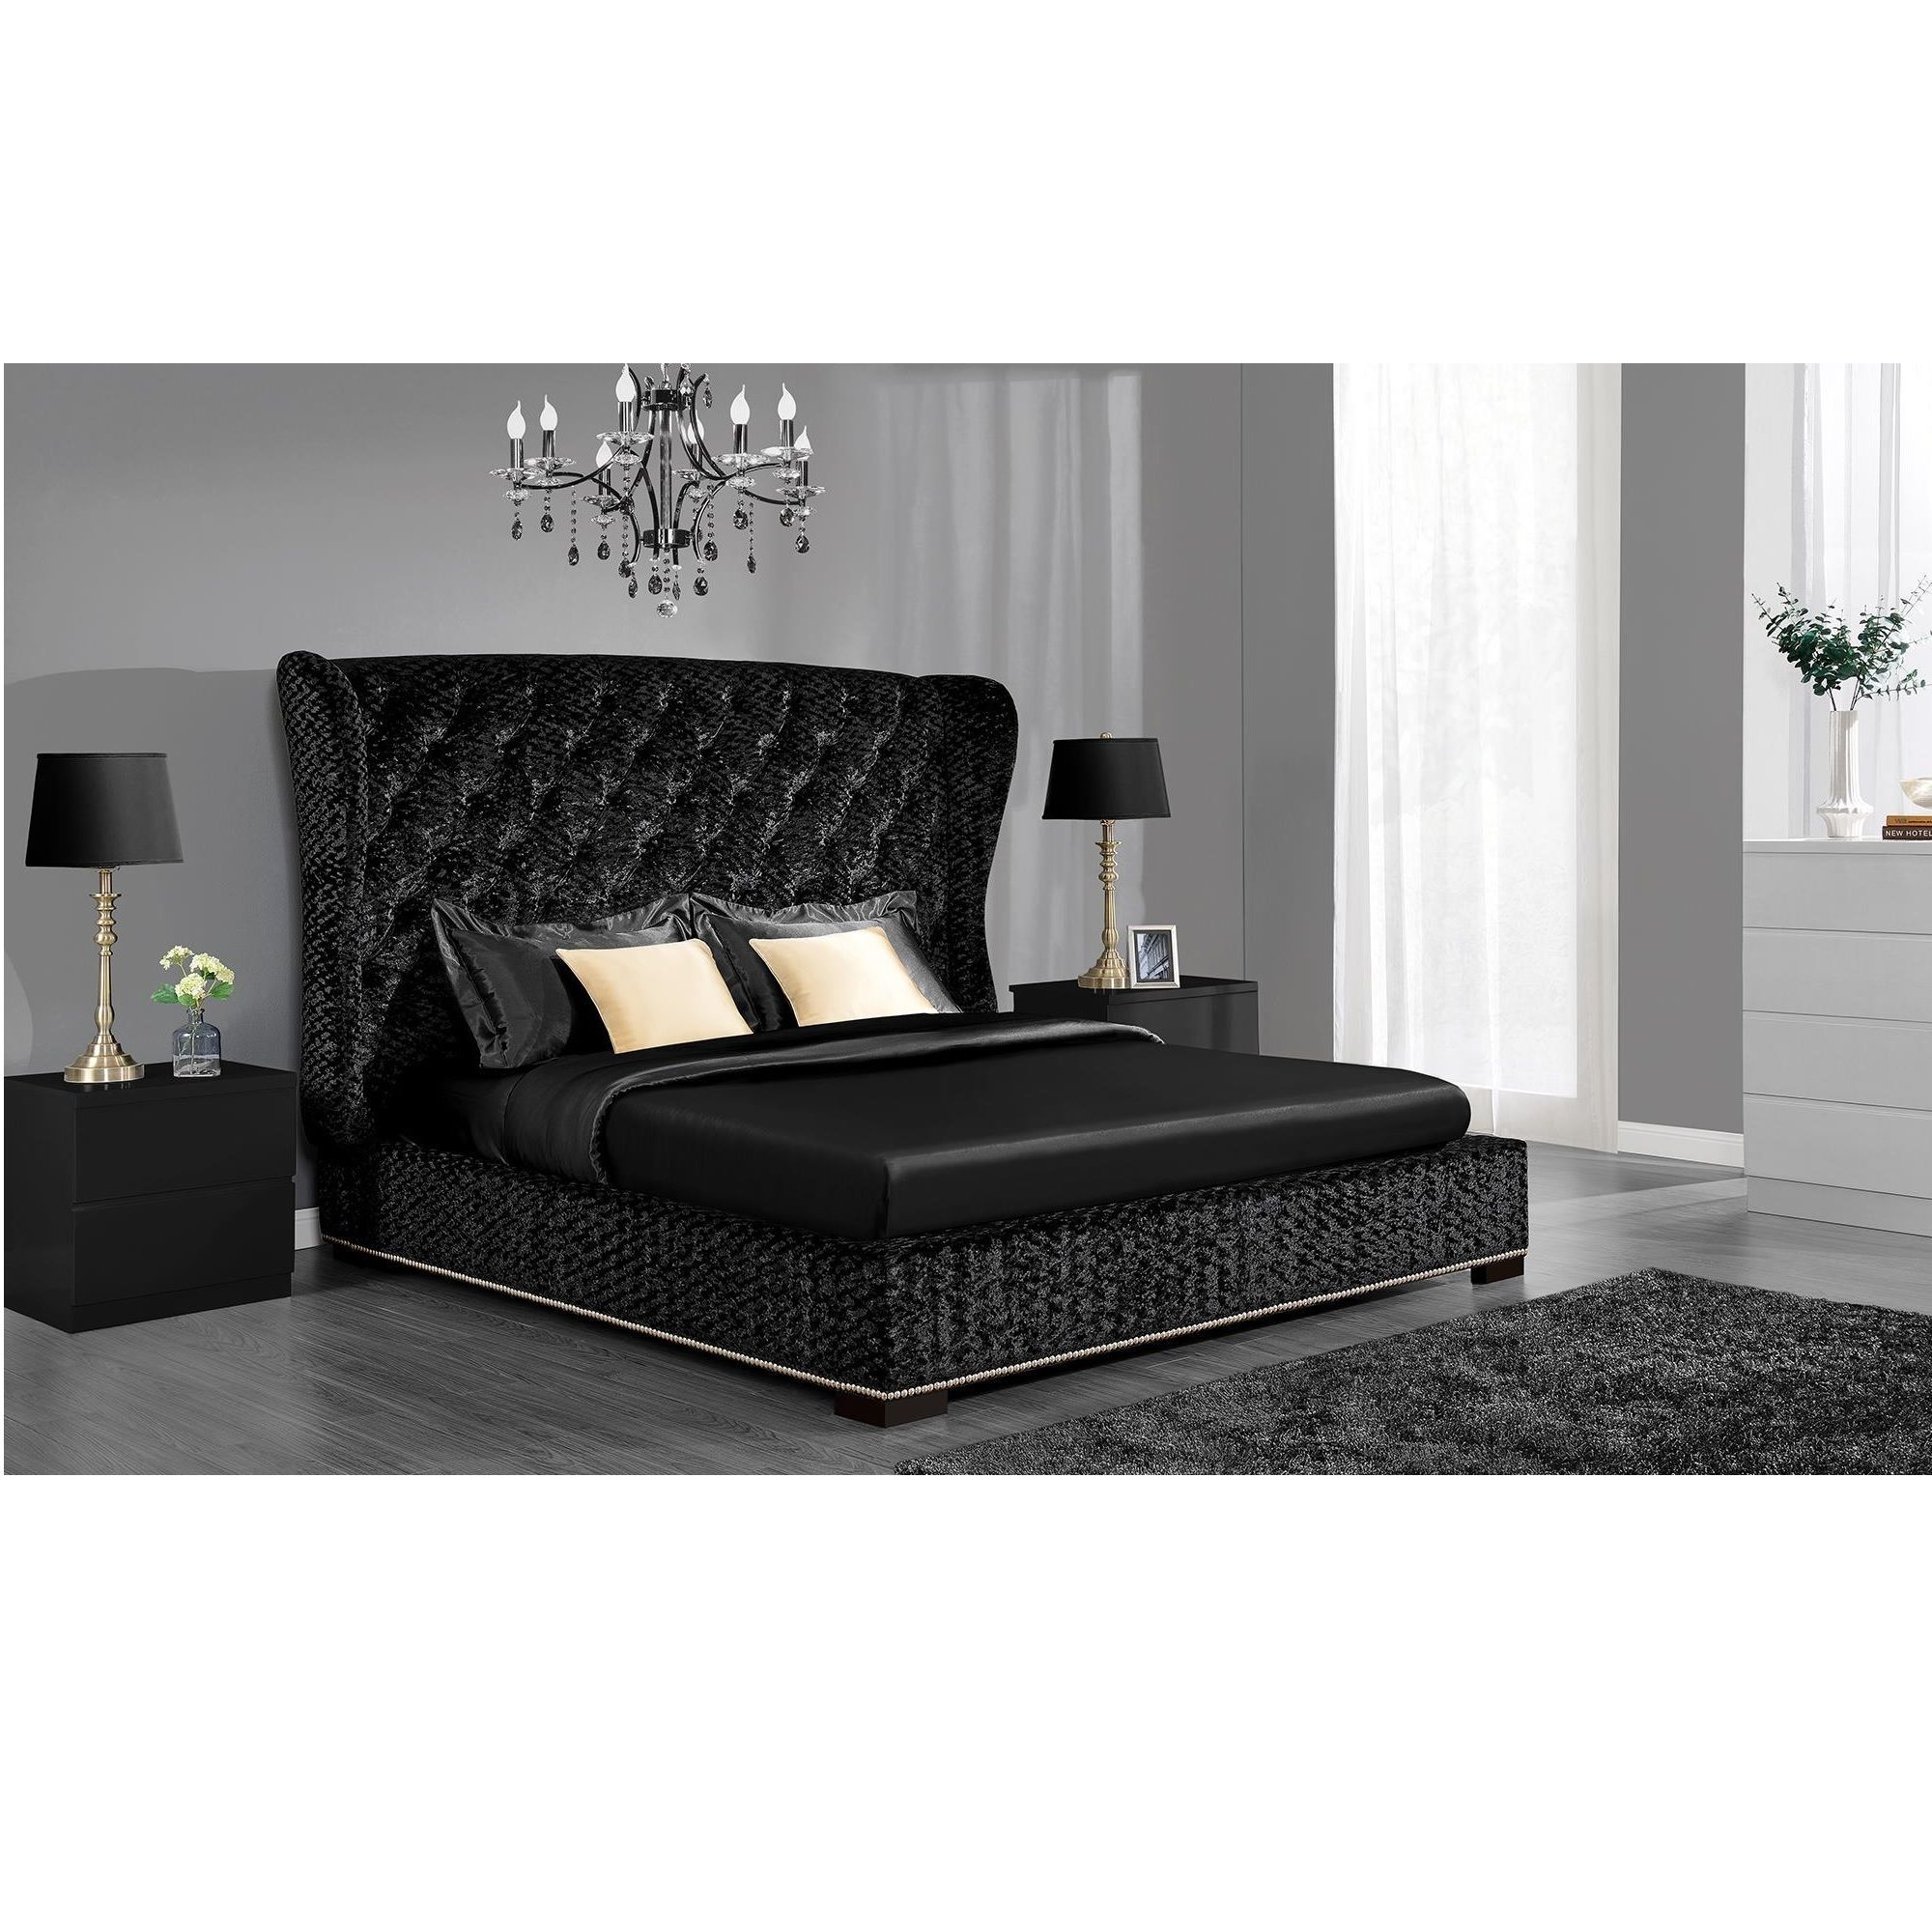 DHP Luxe Premium Velvet Upholstered Bed   Overstock  Shopping   Great Deals  on DHP Beds. This striking Luxe bed is guaranteed to be the focal point of your